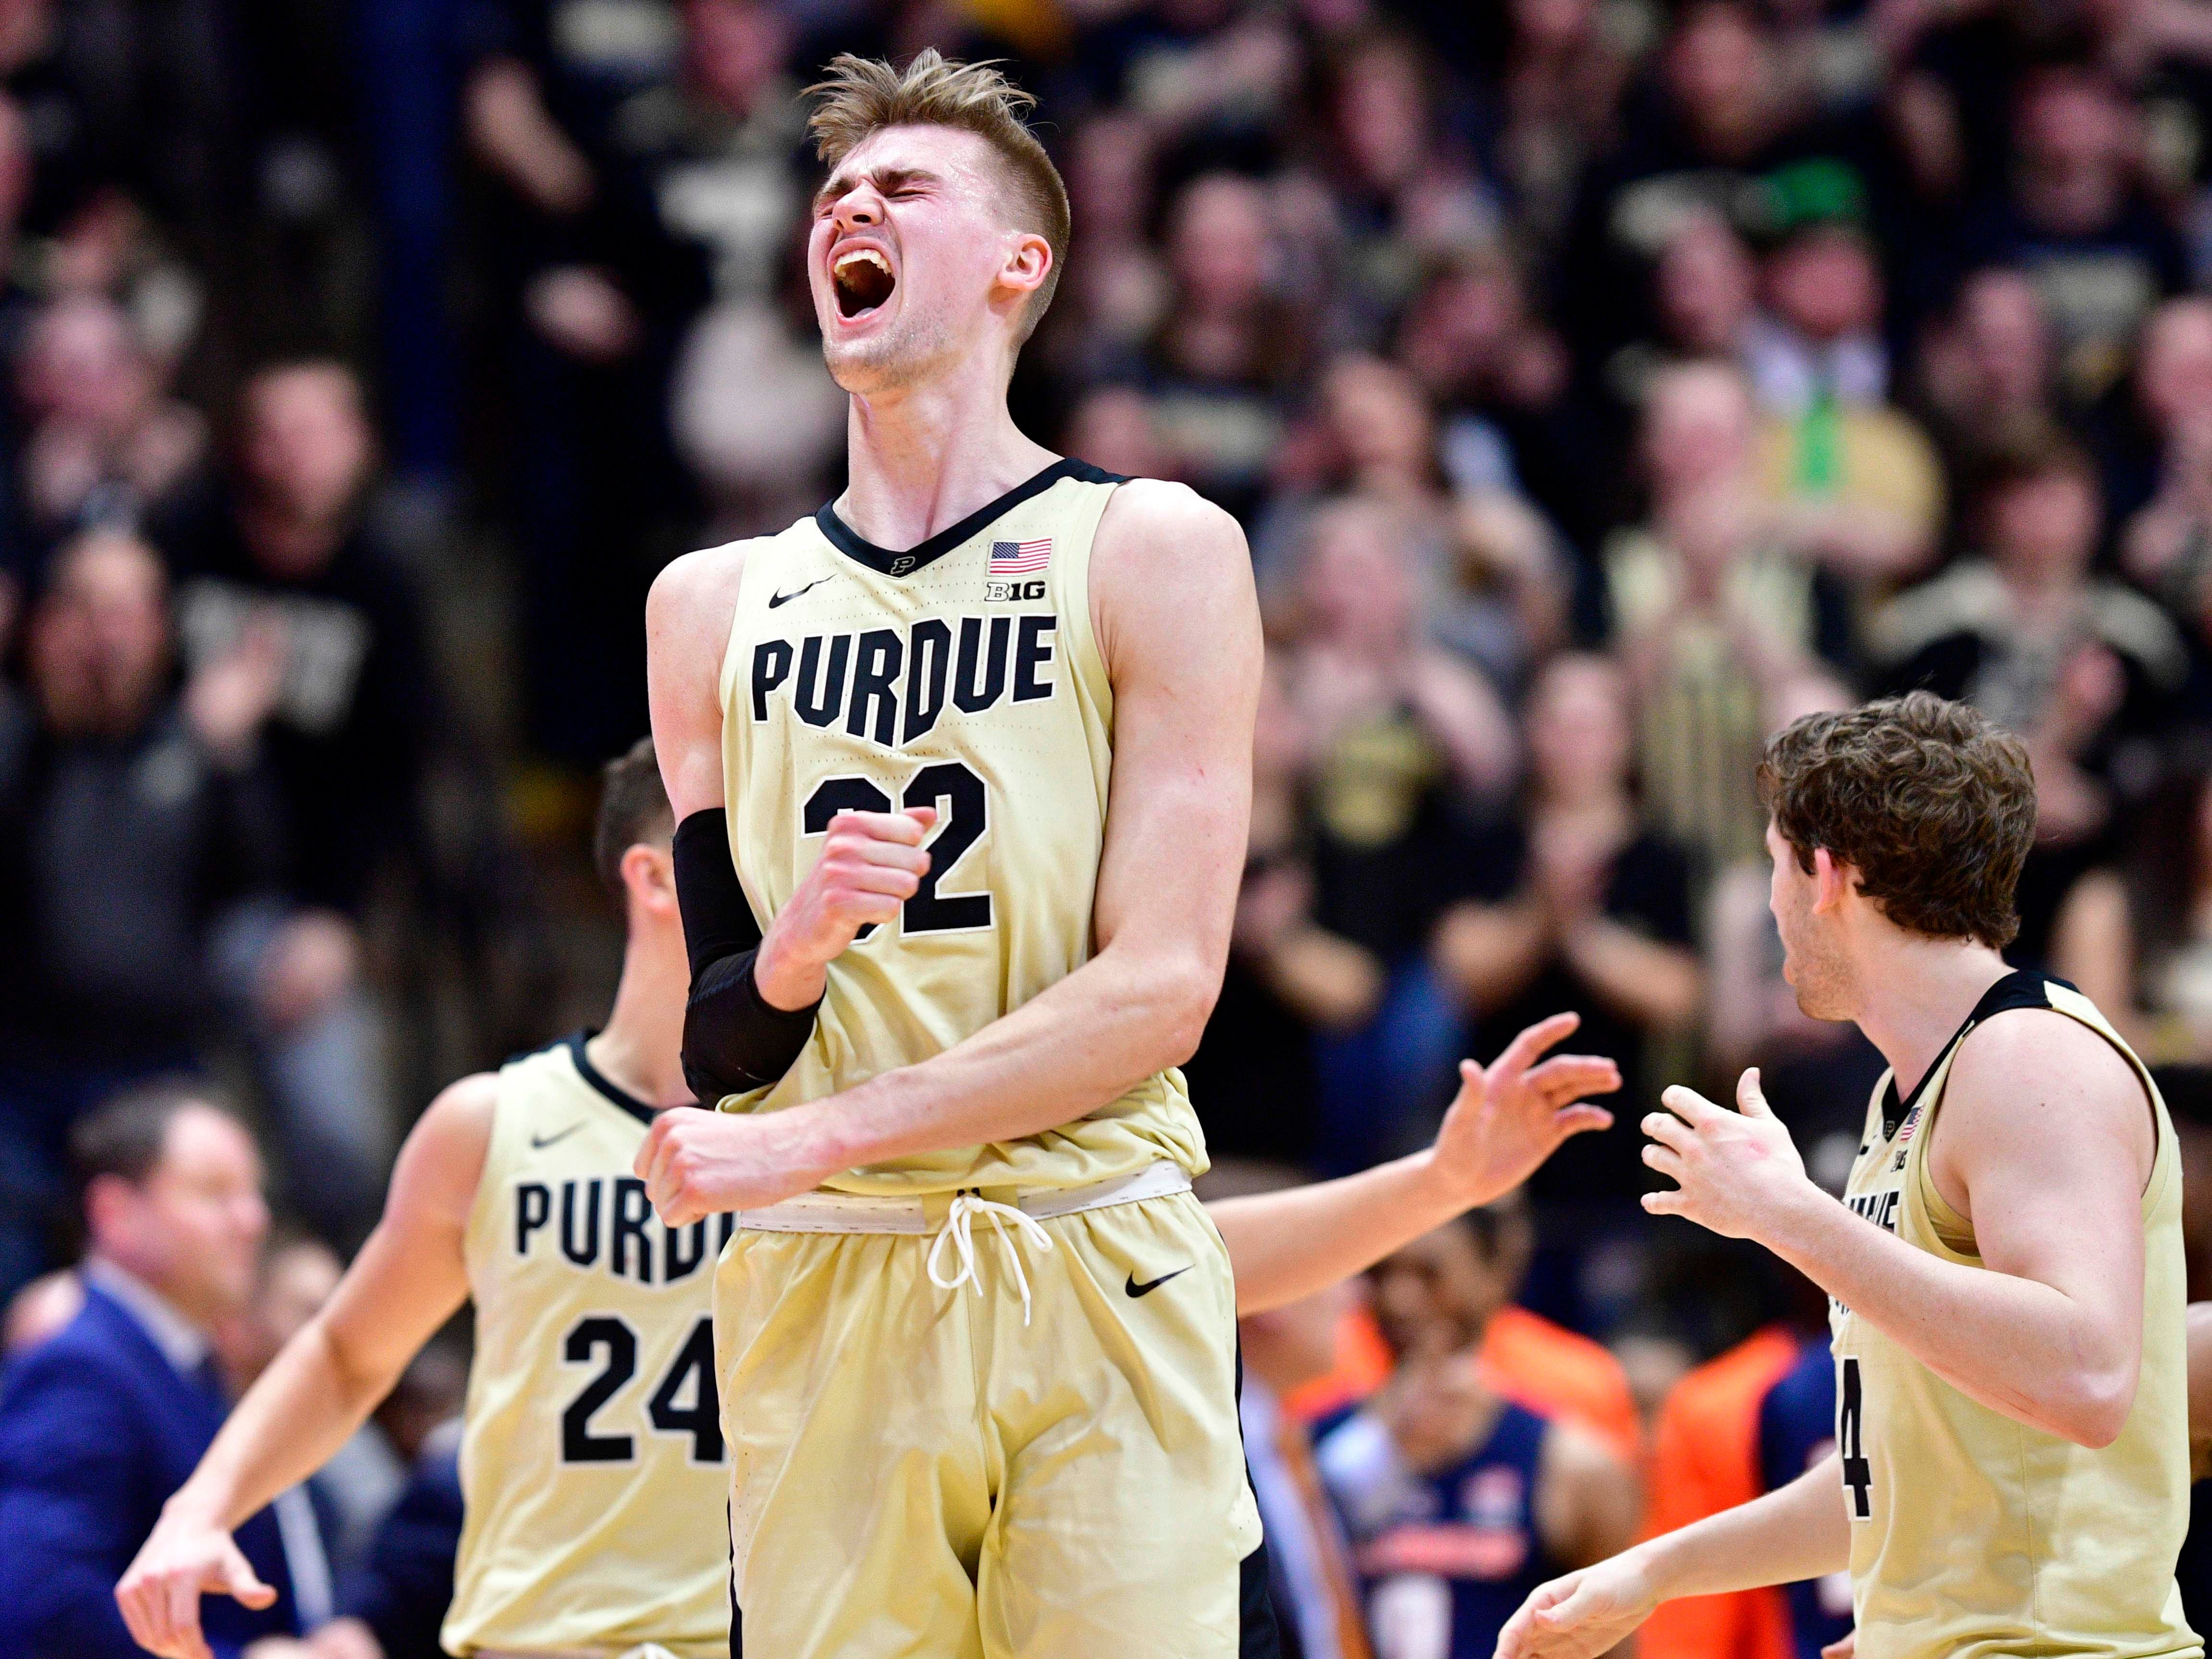 Feb 27, 2019; West Lafayette, IN, USA; Purdue Boilermakers center Matt Haarms (32) celebrates during the second half of the game at Mackey Arena. The Purdue Boilermakers defeated the Illinois Fighting Illini 73 to 56.